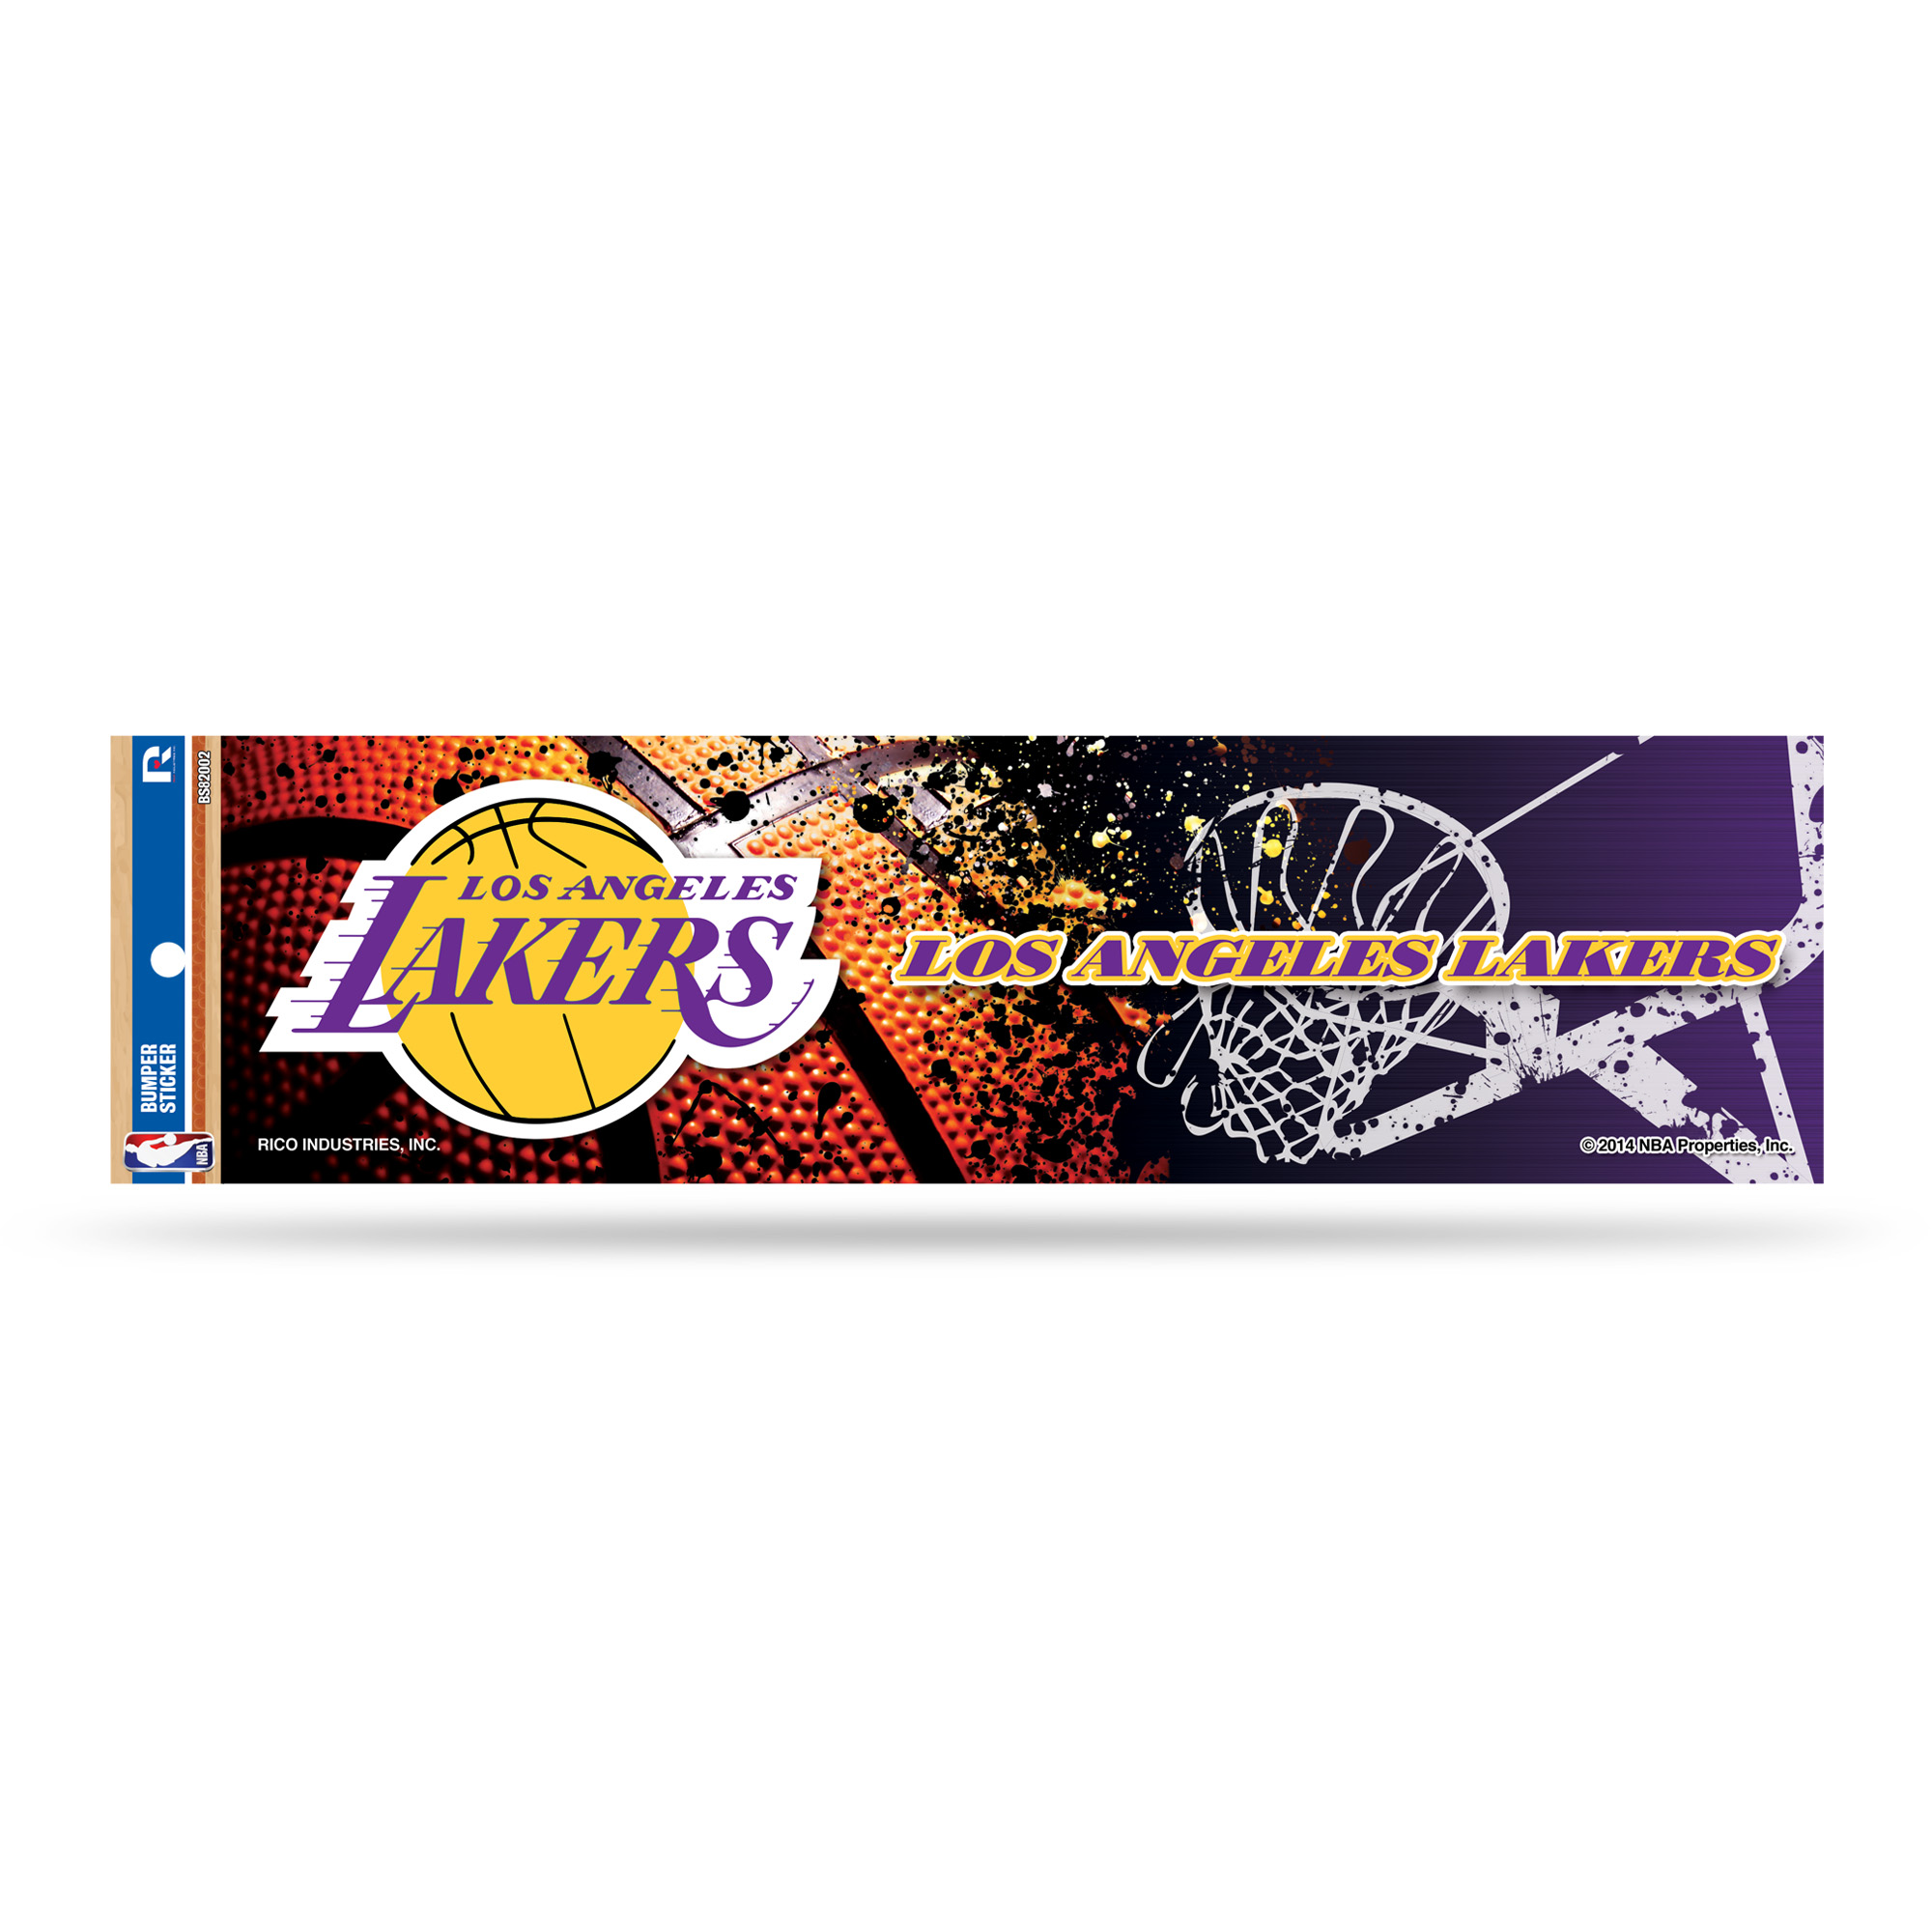 Los Angeles Lakers Official NBA 3 inch x 12 inch  Bumper Sticker by Rico